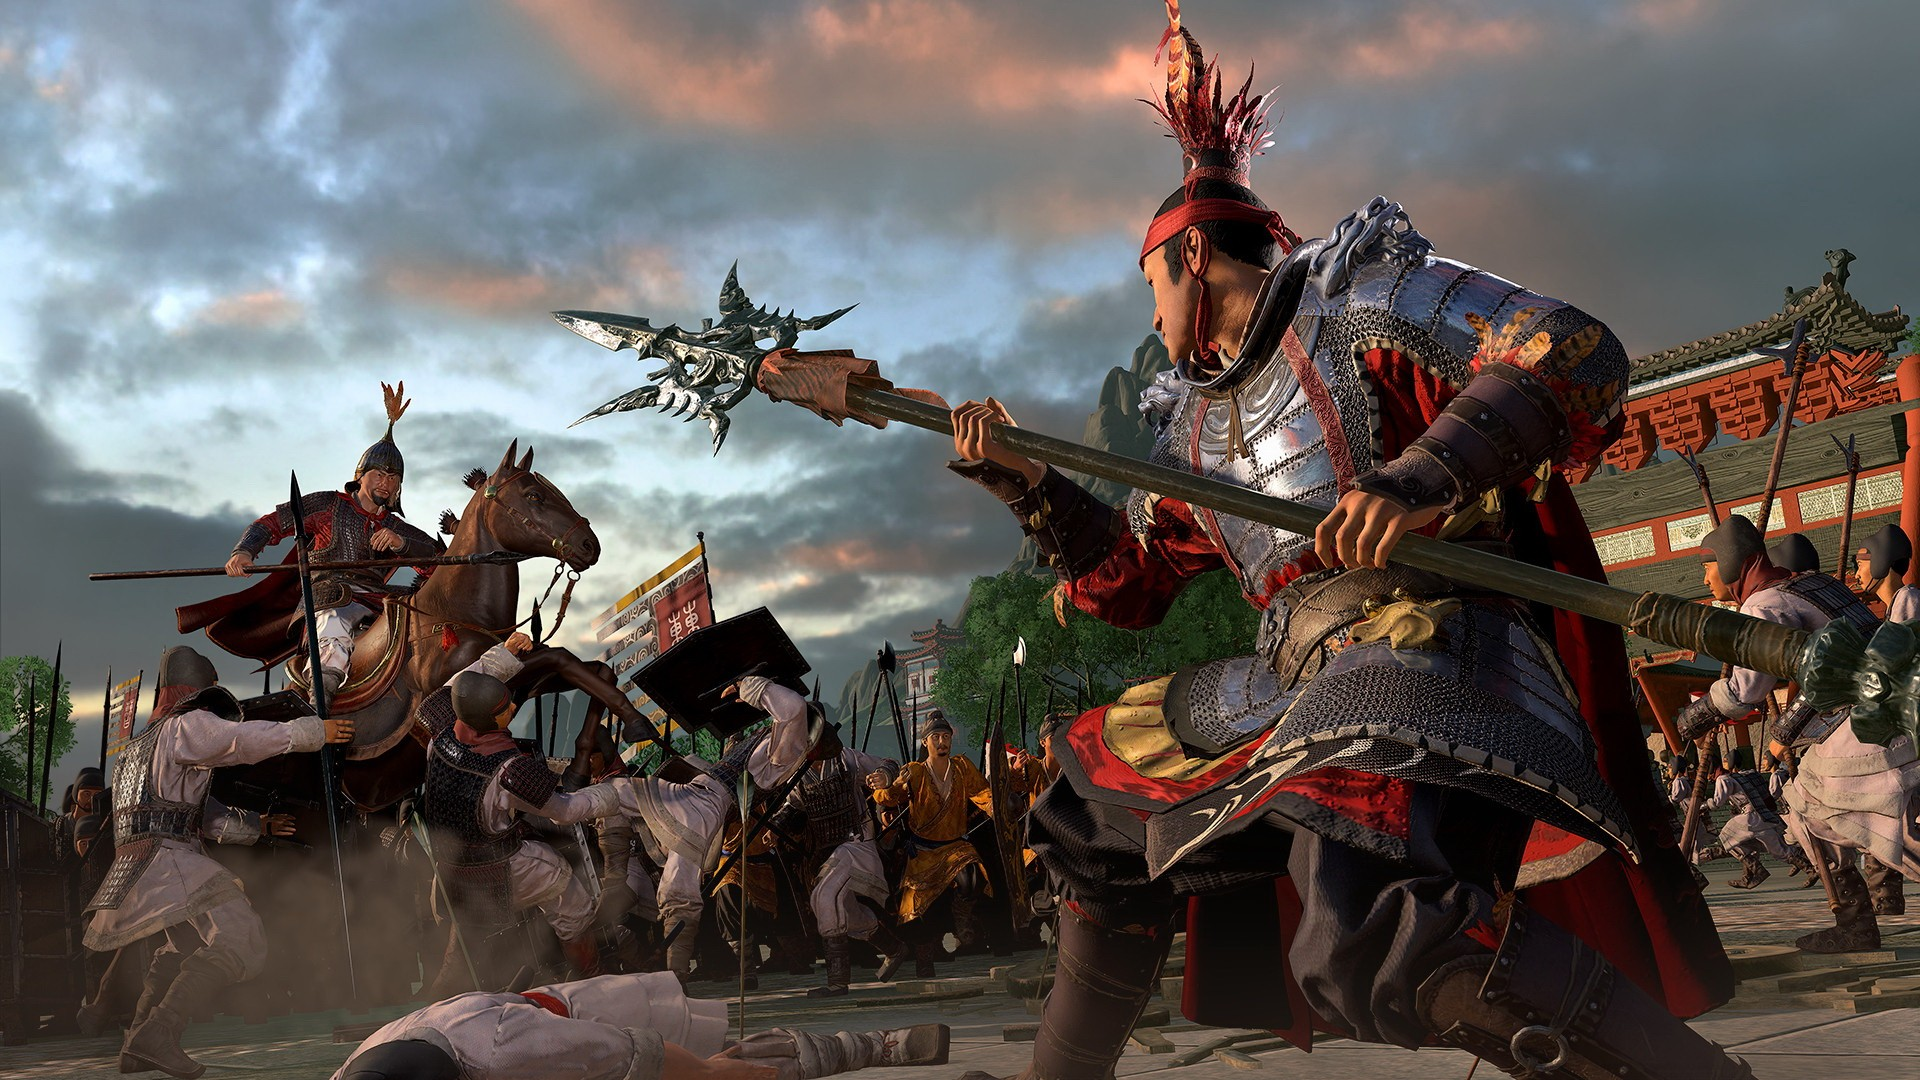 Скриншот N158028 из игры Total War: Three Kingdoms (2019)